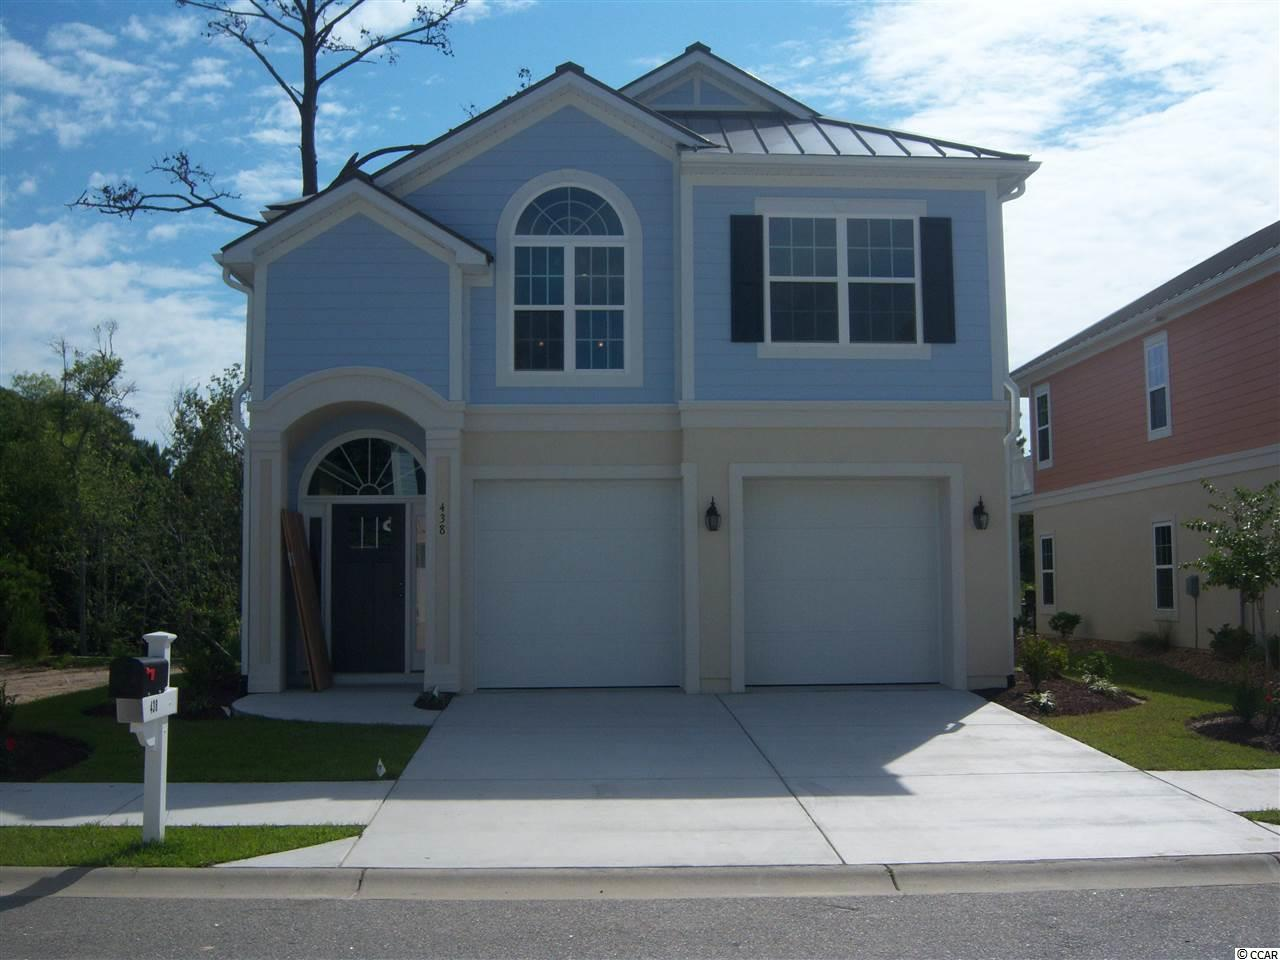 438 7th Avenue South, North Myrtle Beach, SC 29582